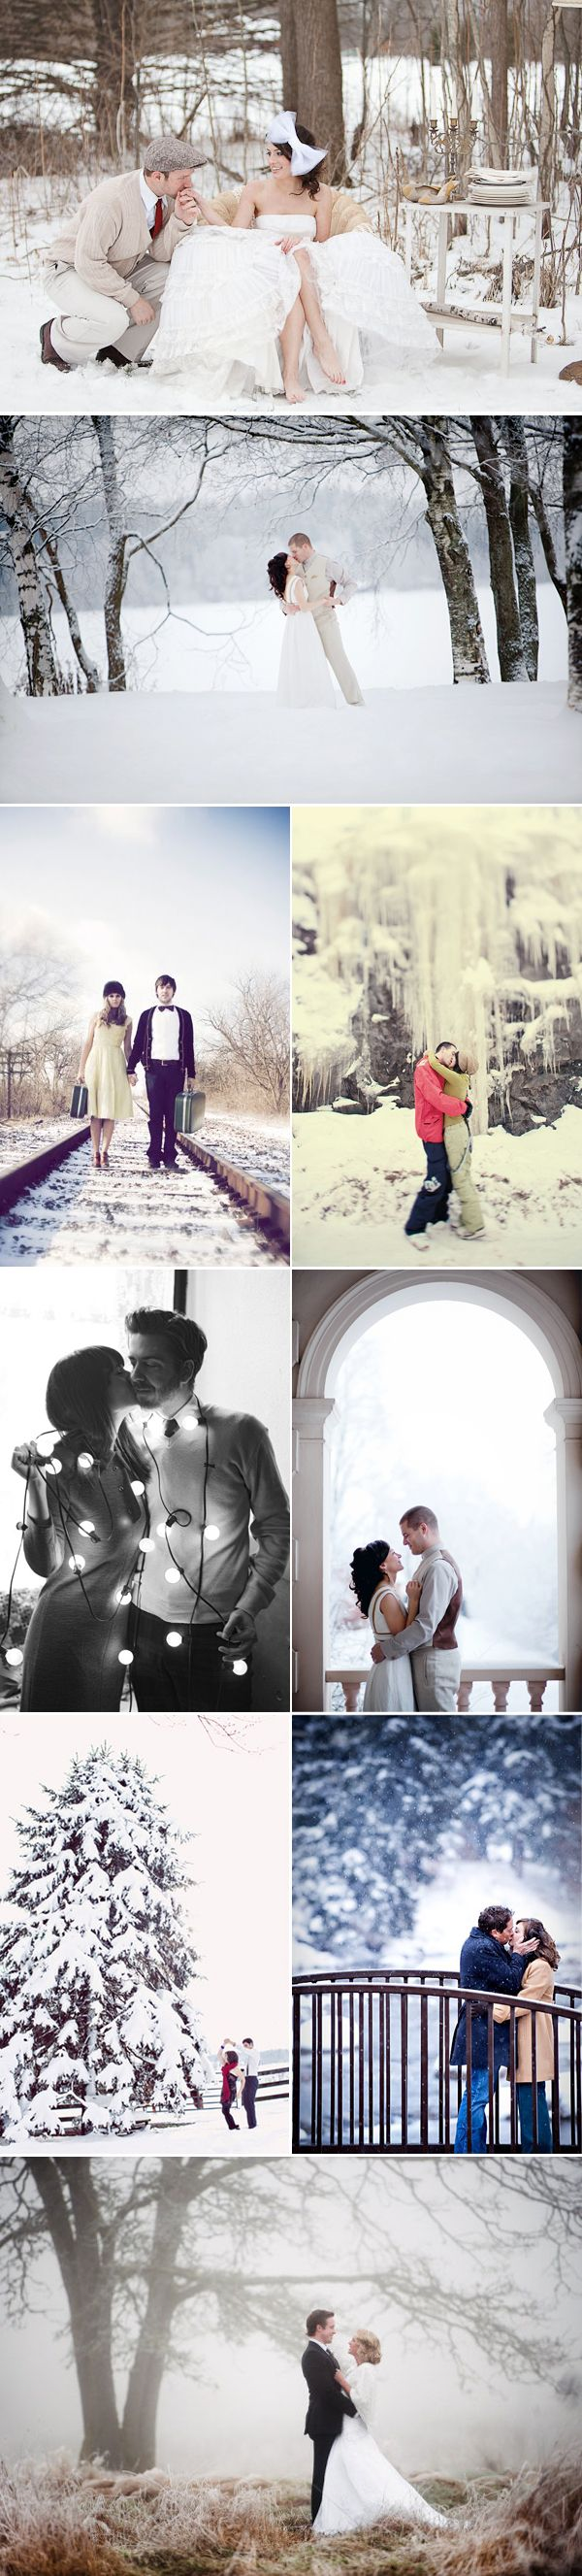 39 Winter Engagement Photos